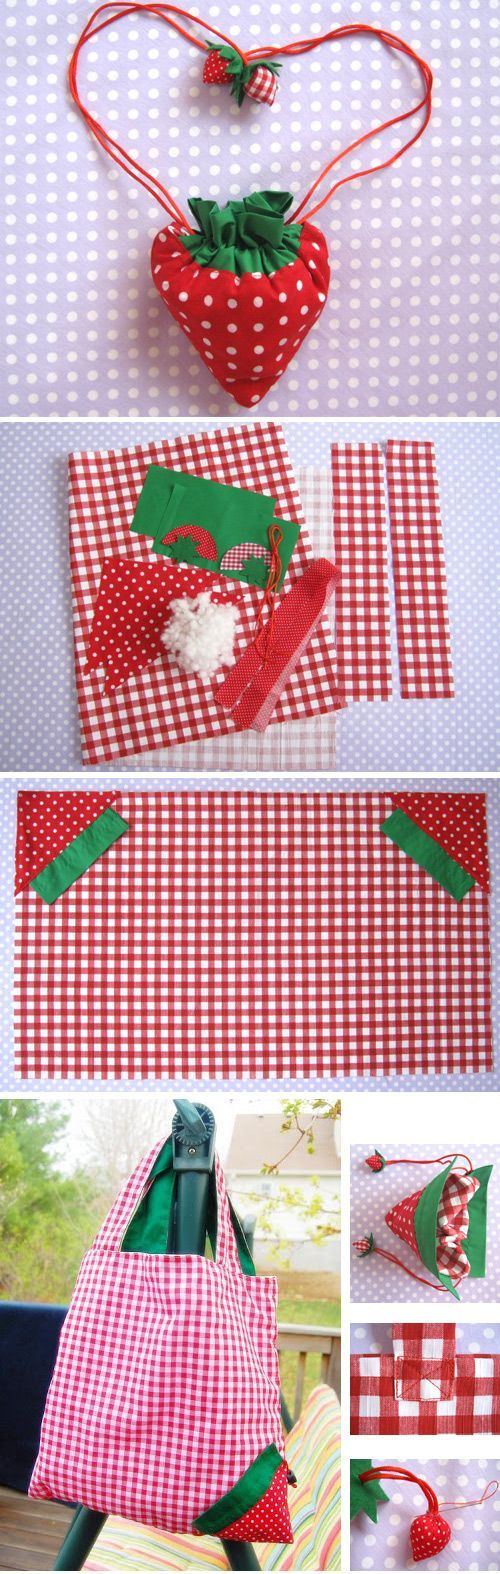 Pin By Judy Wahl On Sewing Pinterest Projects And Tas Lipat Belanja Strawberry Hand Bag Many Beginners In Often Argue That They Do Not Have Any Need For Special Furniture However Soon Realize The Importance Of Having